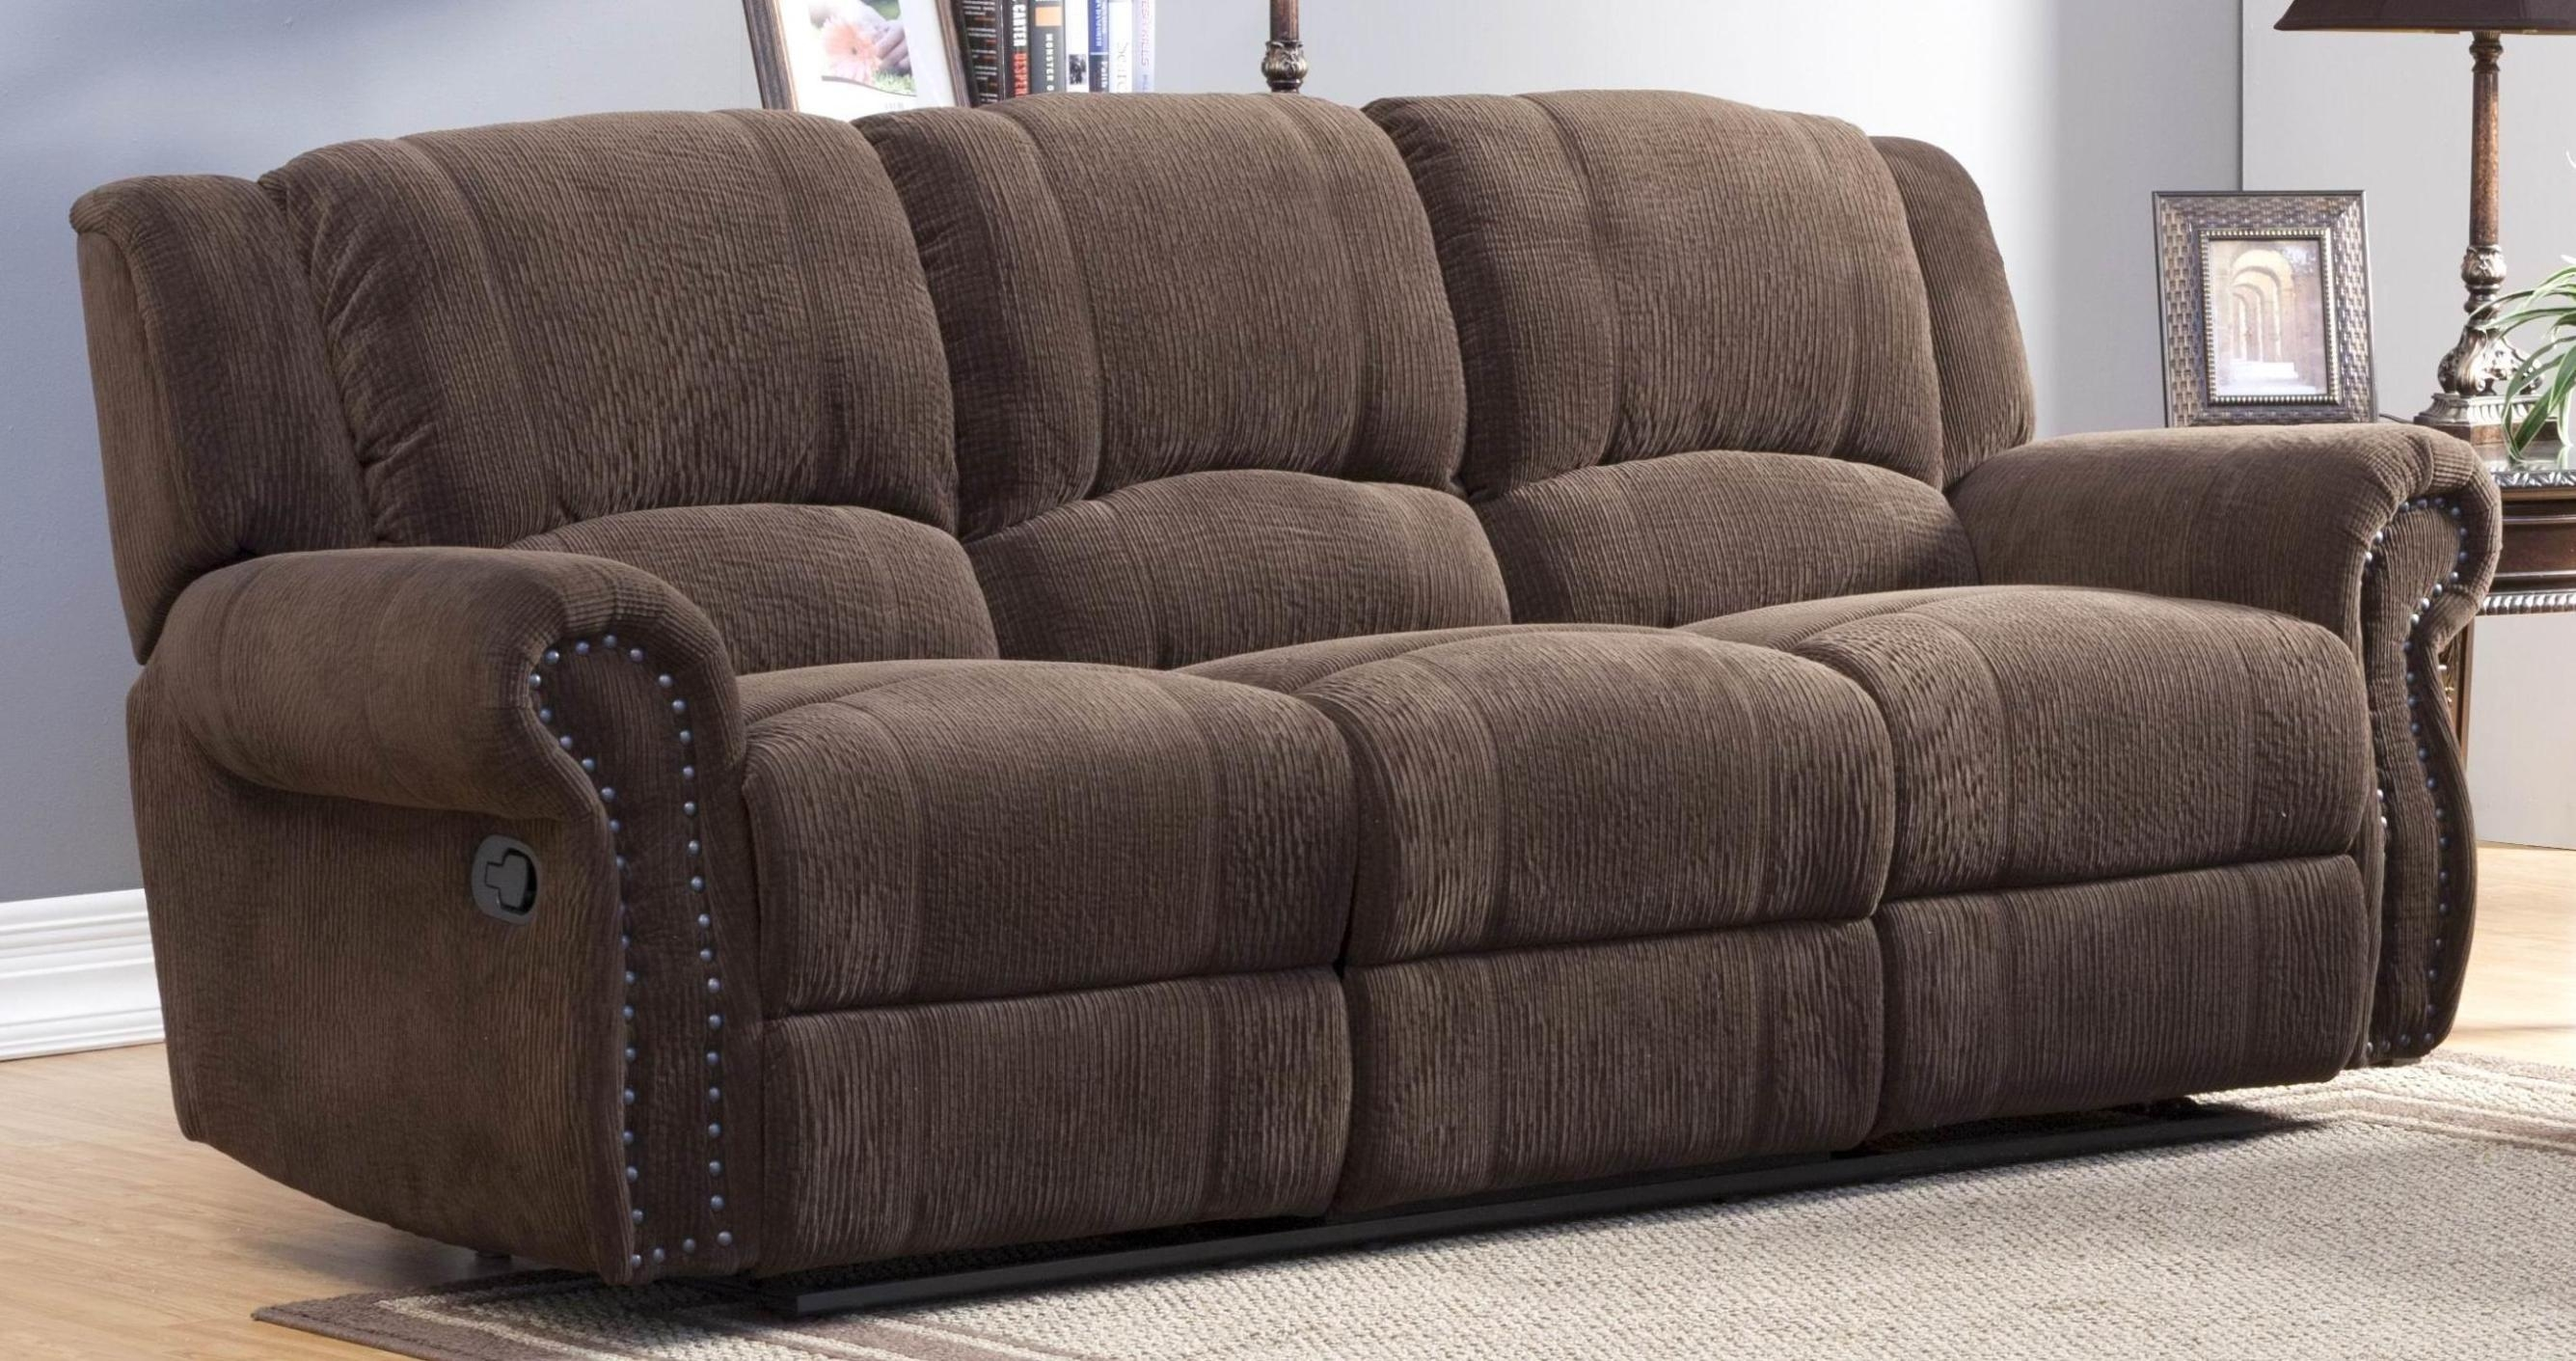 20 collection of slipcover for recliner sofas sofa ideas for Sectional sofa slipcovers walmart